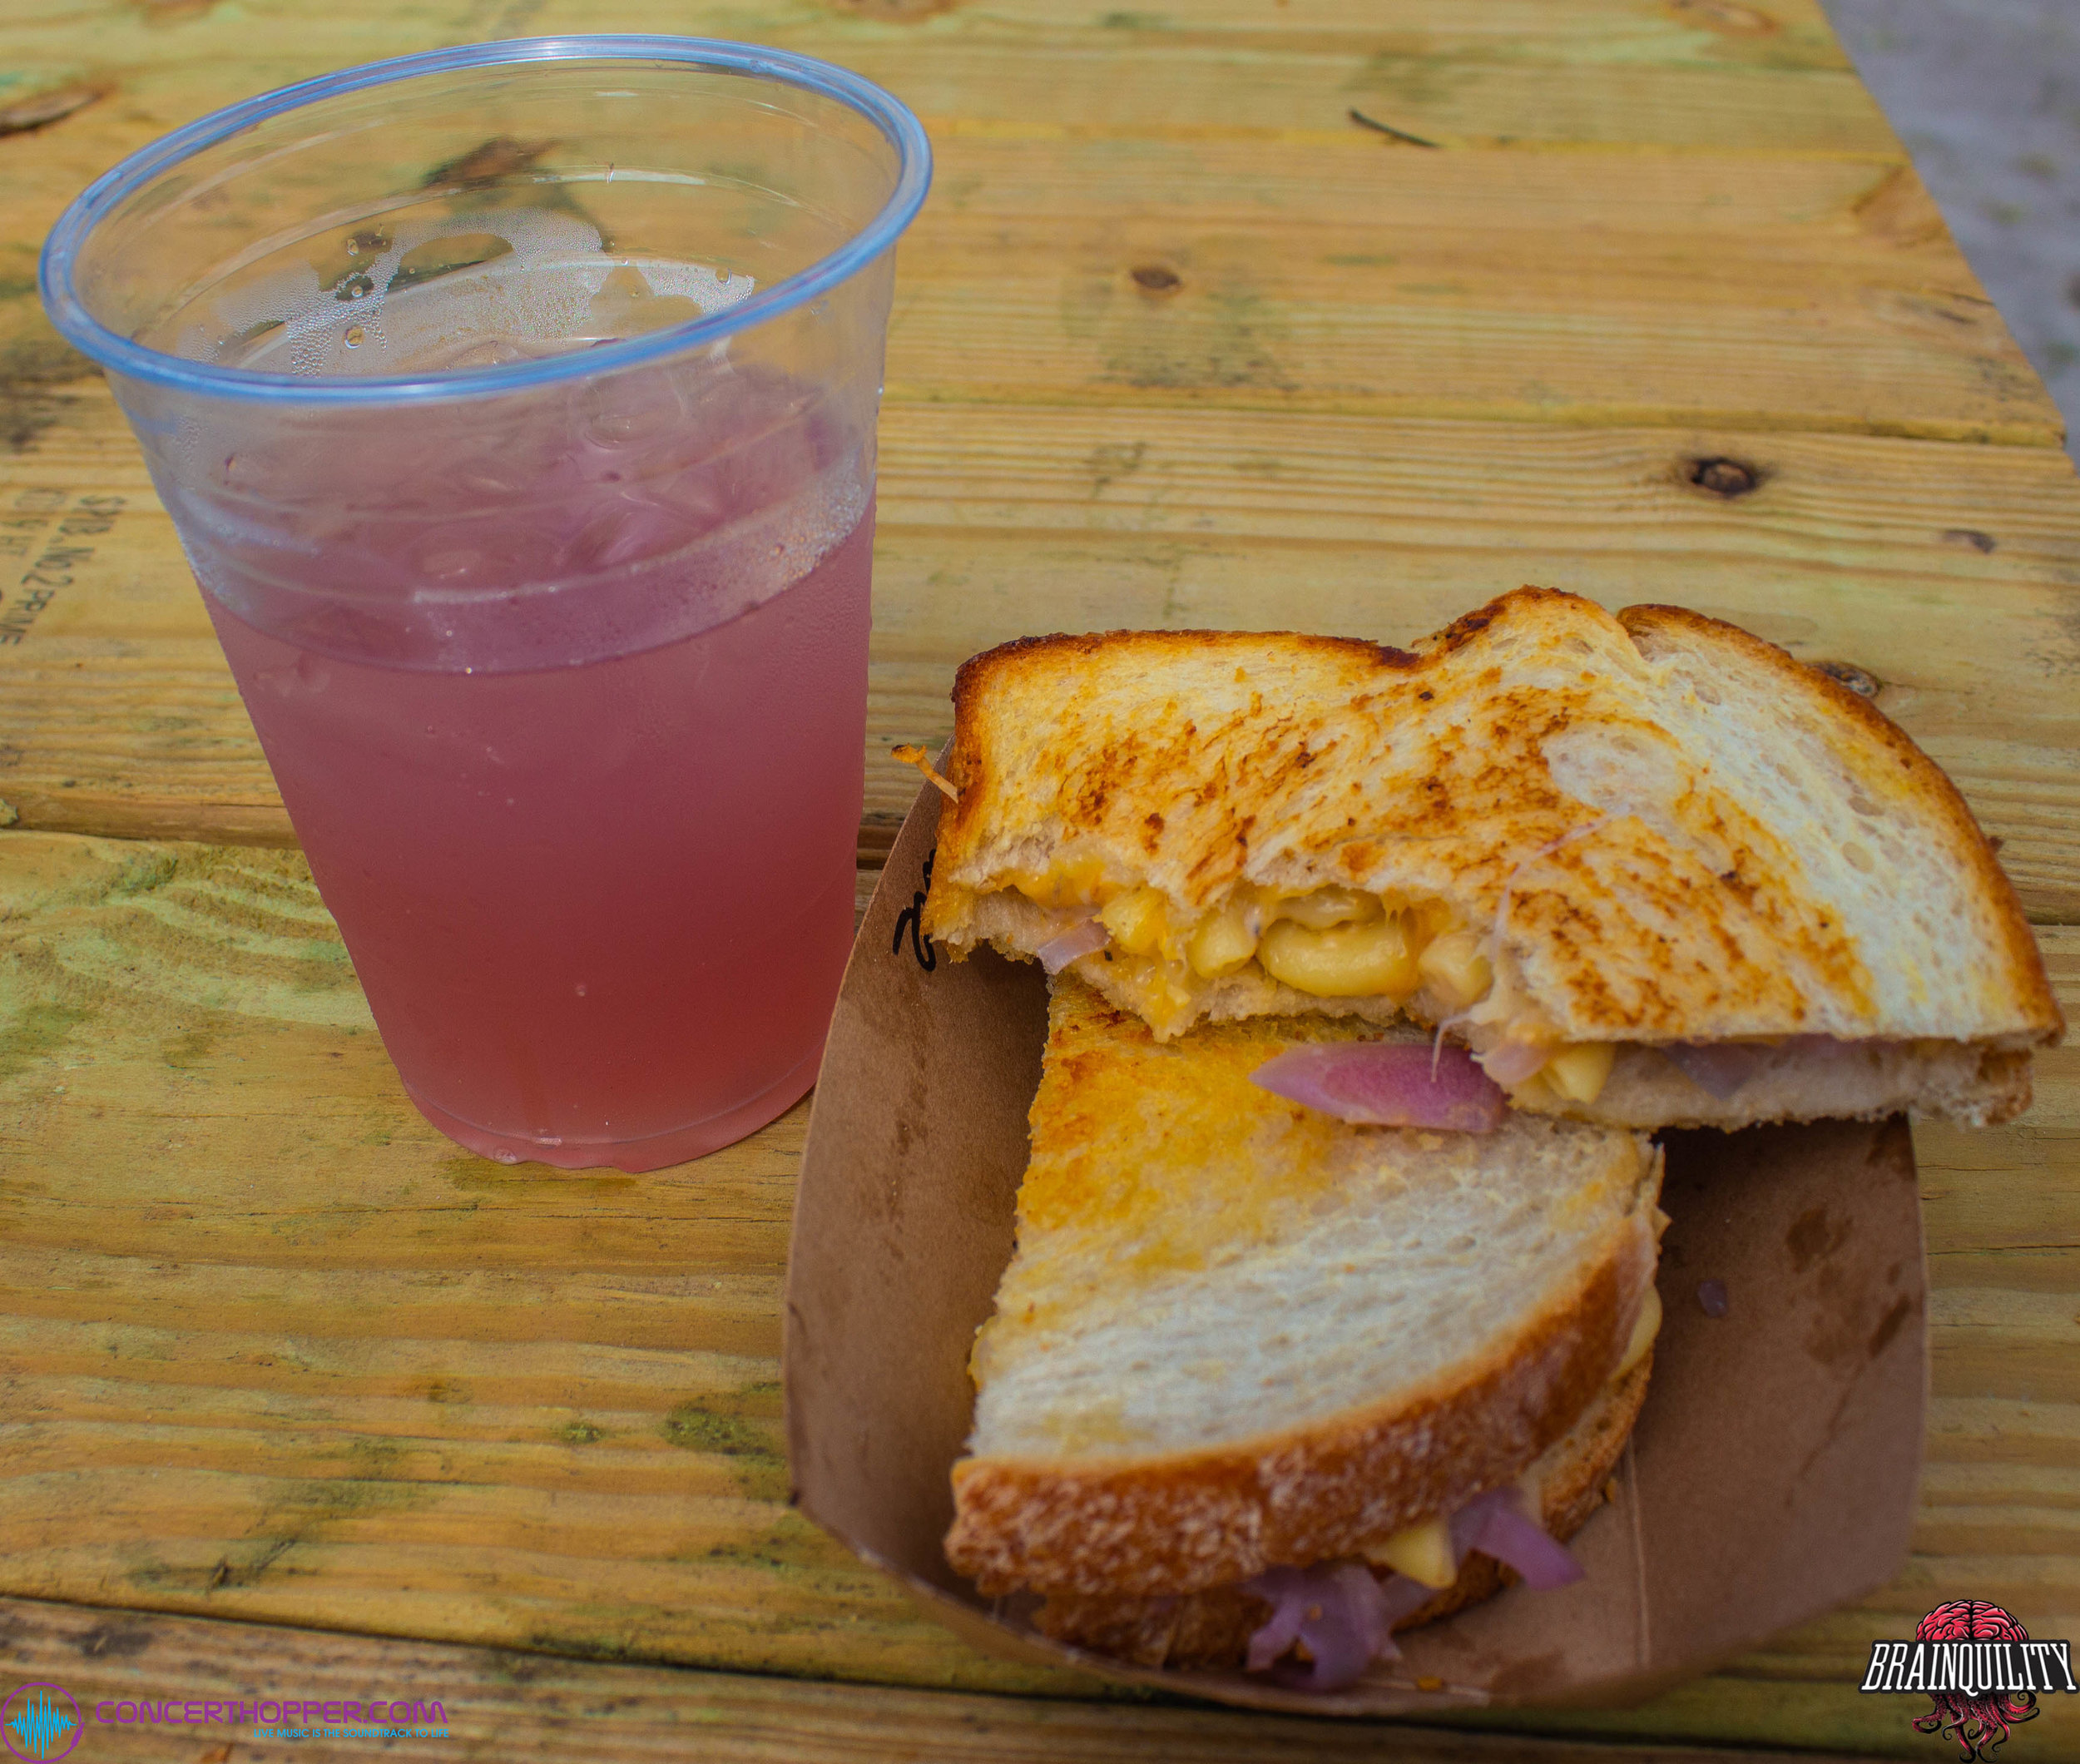 The Mac Daddy and Space Juice from The Grilled Cheese Incident.